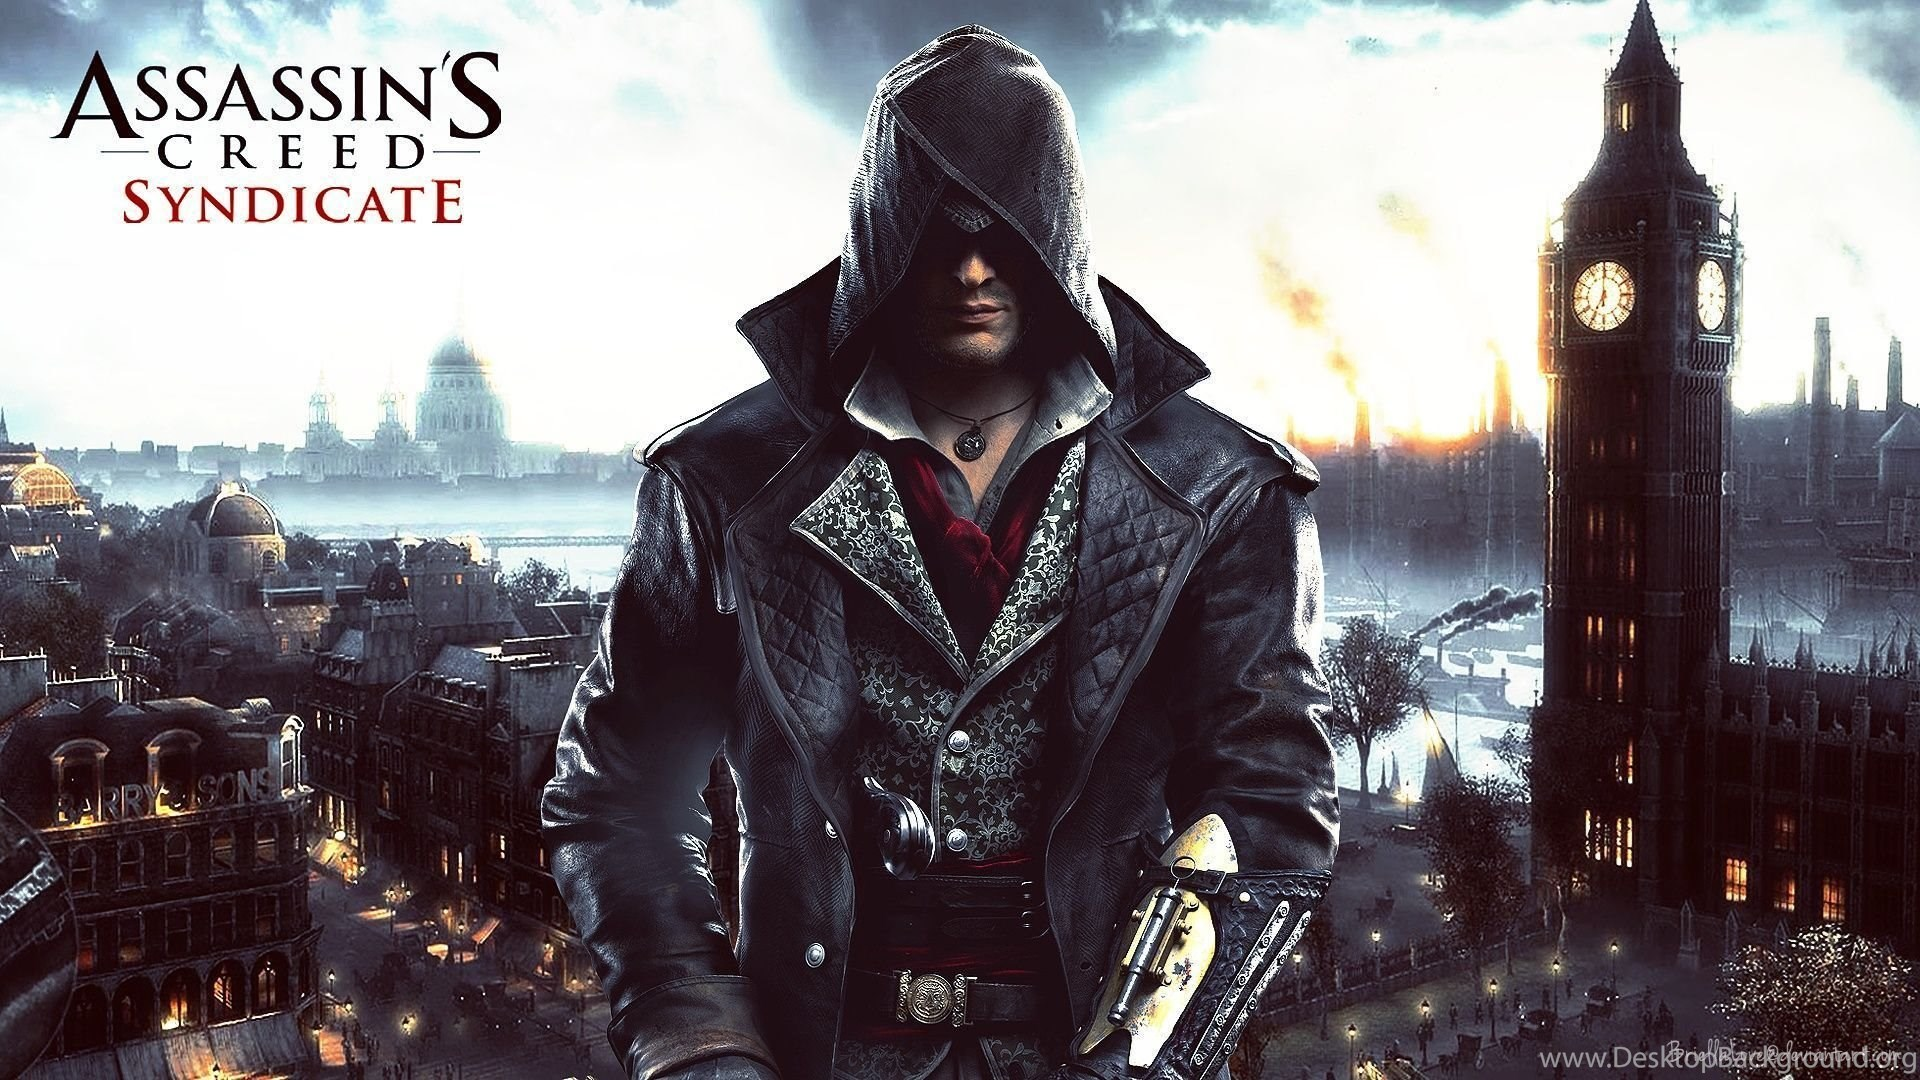 Assassin S Creed Syndicate Wallpapers Hd 3 Gallery Desktop Background